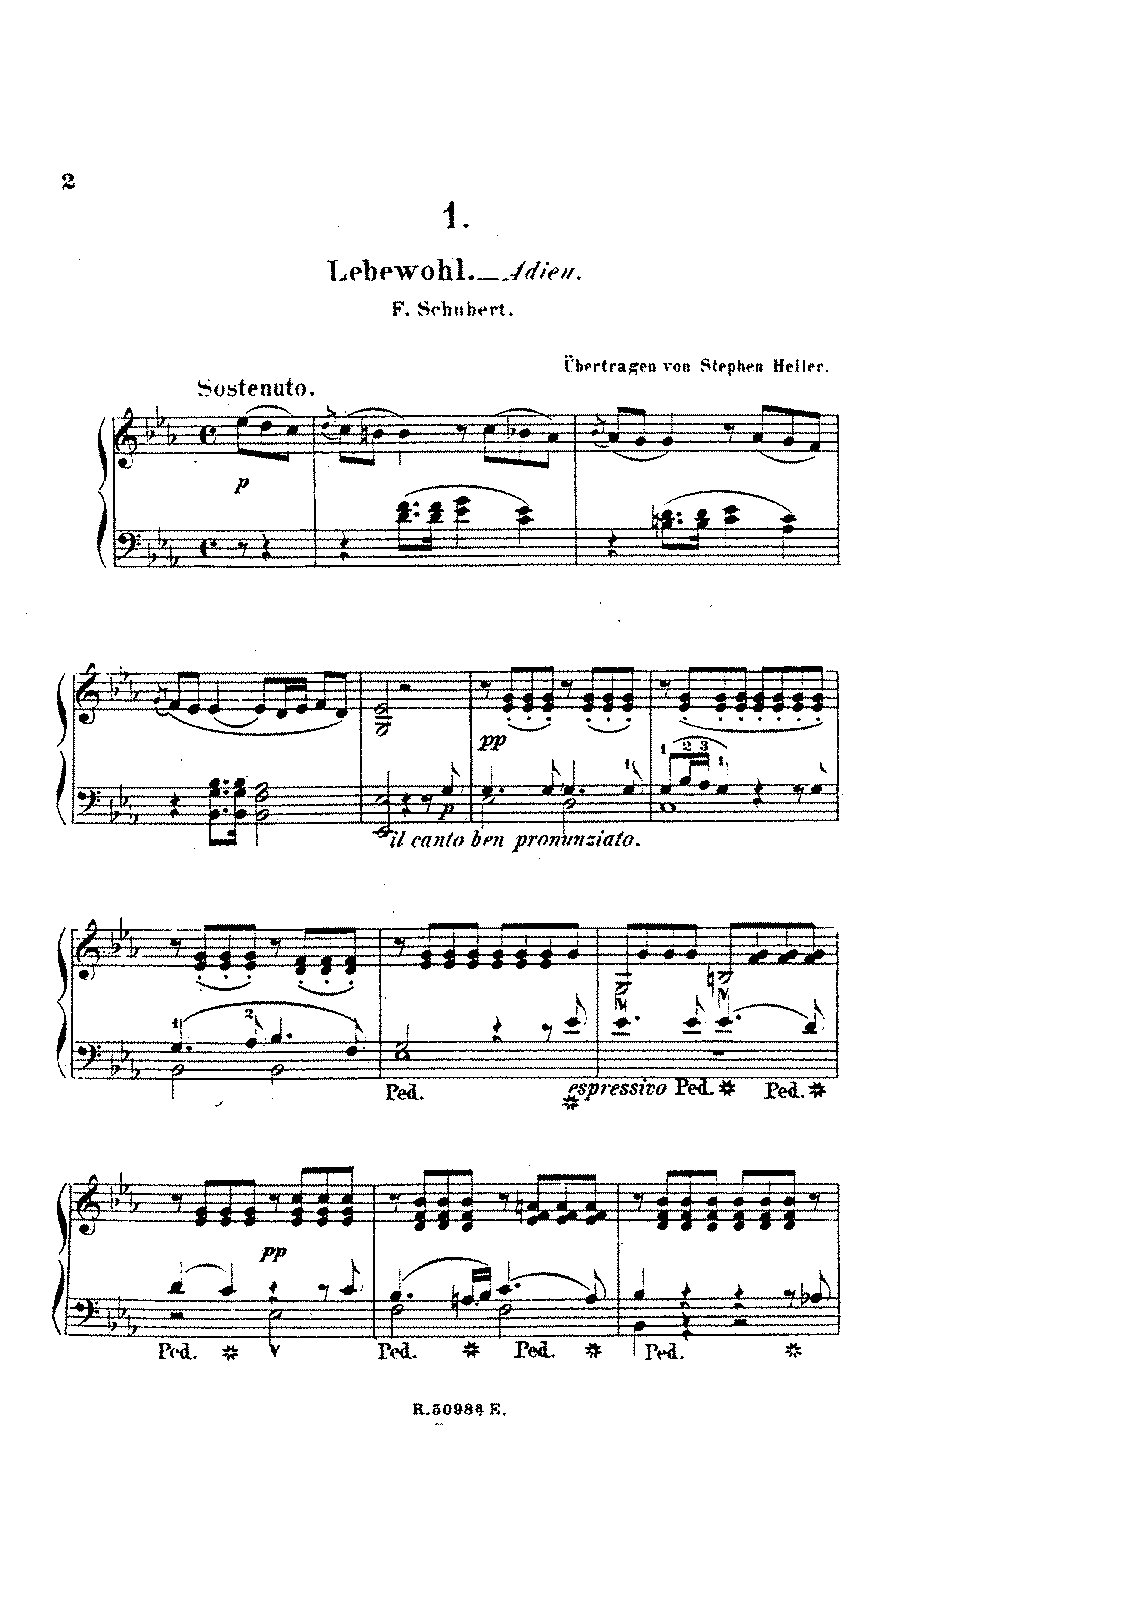 Heller - Op.misc - 30 Melodies of Schubert.pdf